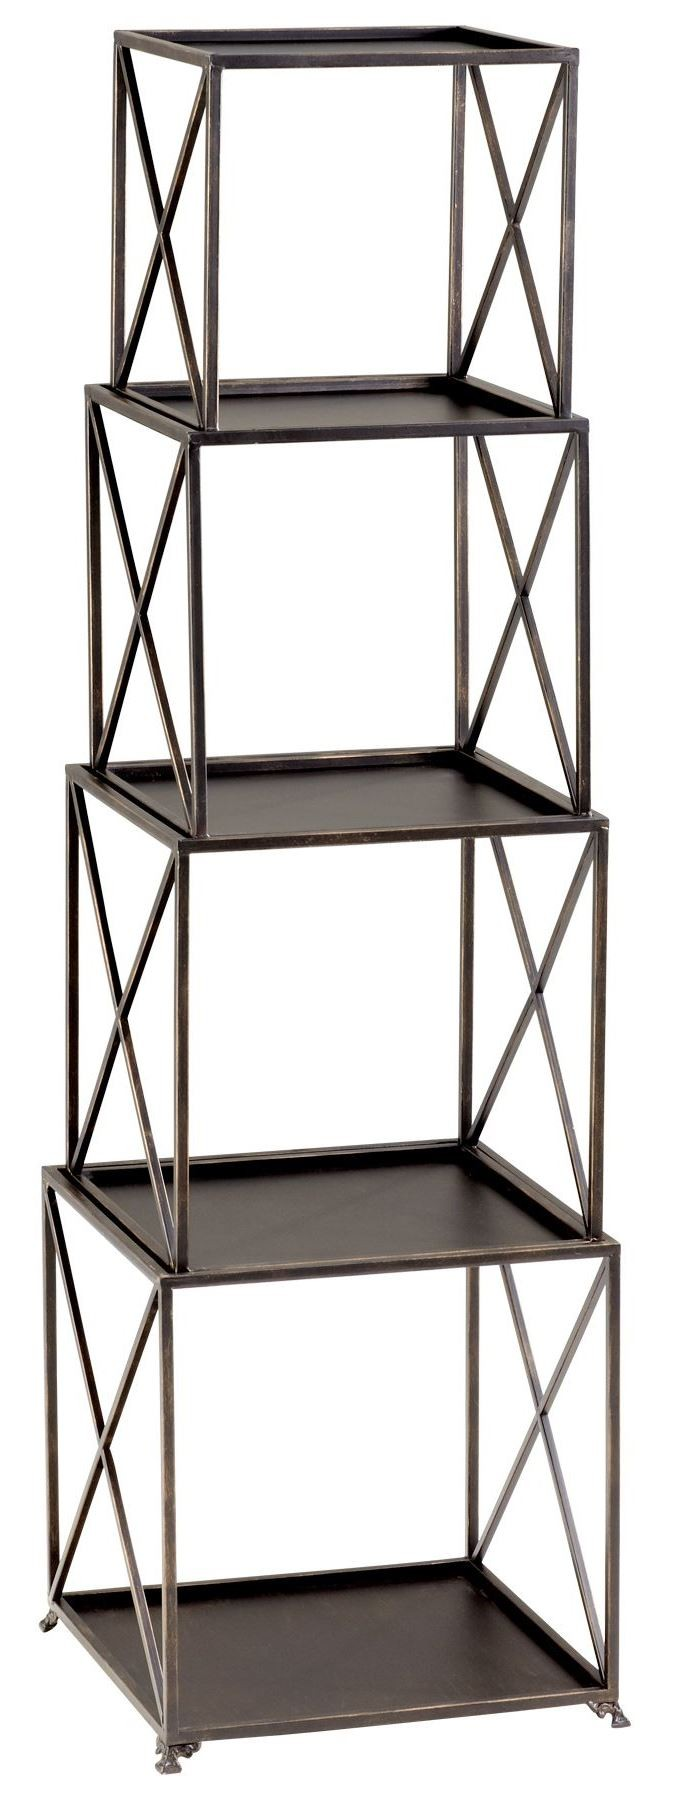 surrey small etagere from cyan design 4719 coleman furniture. Black Bedroom Furniture Sets. Home Design Ideas